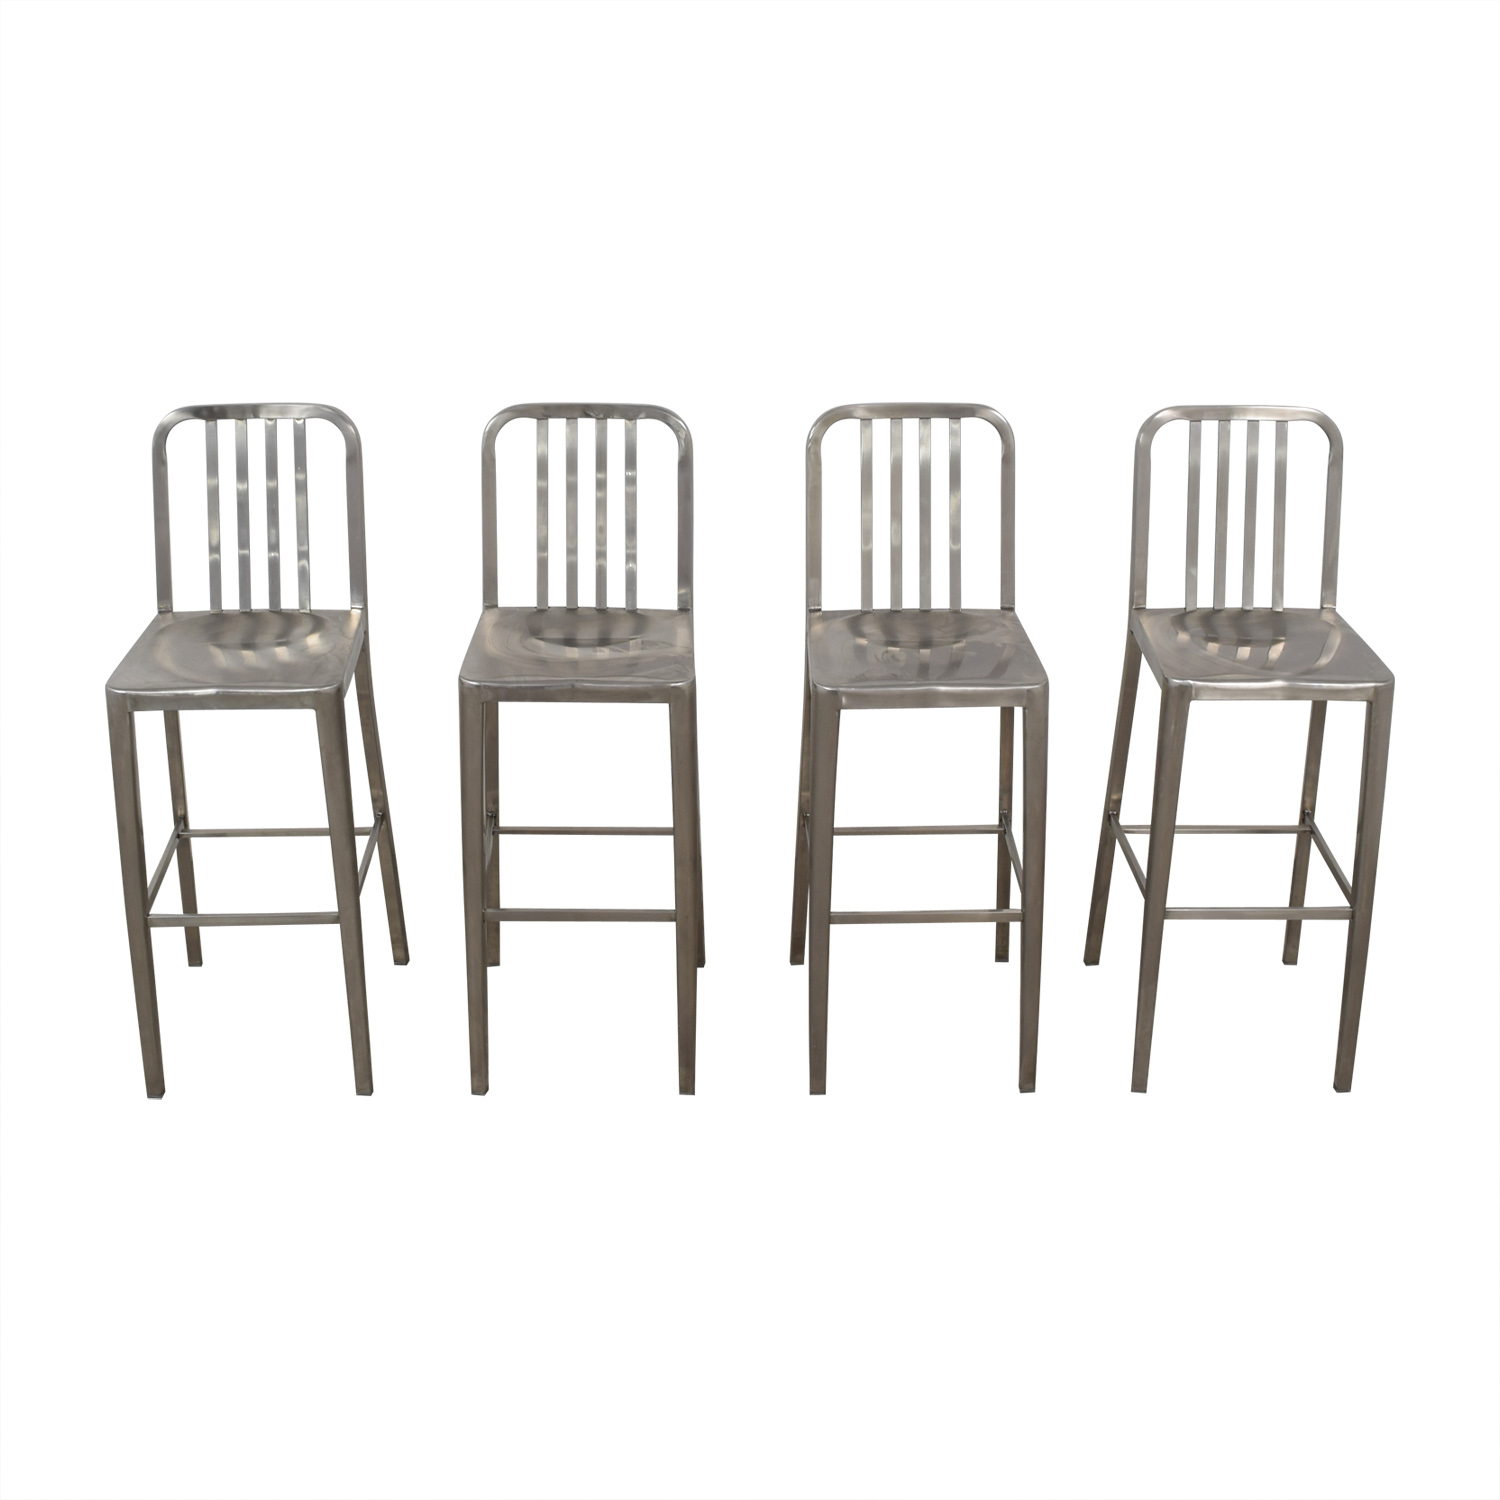 buy  Chrome Bar Stools online